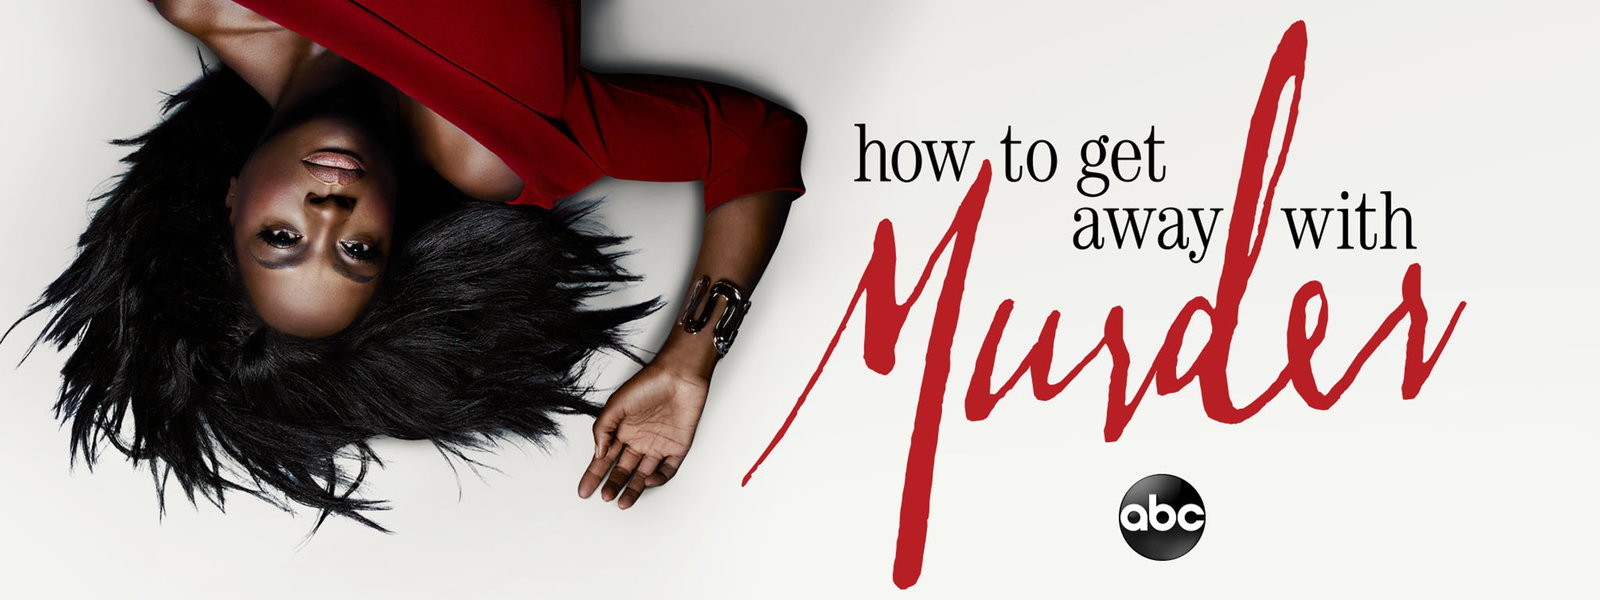 Resultado de imagem para how to get away with murder 3 season